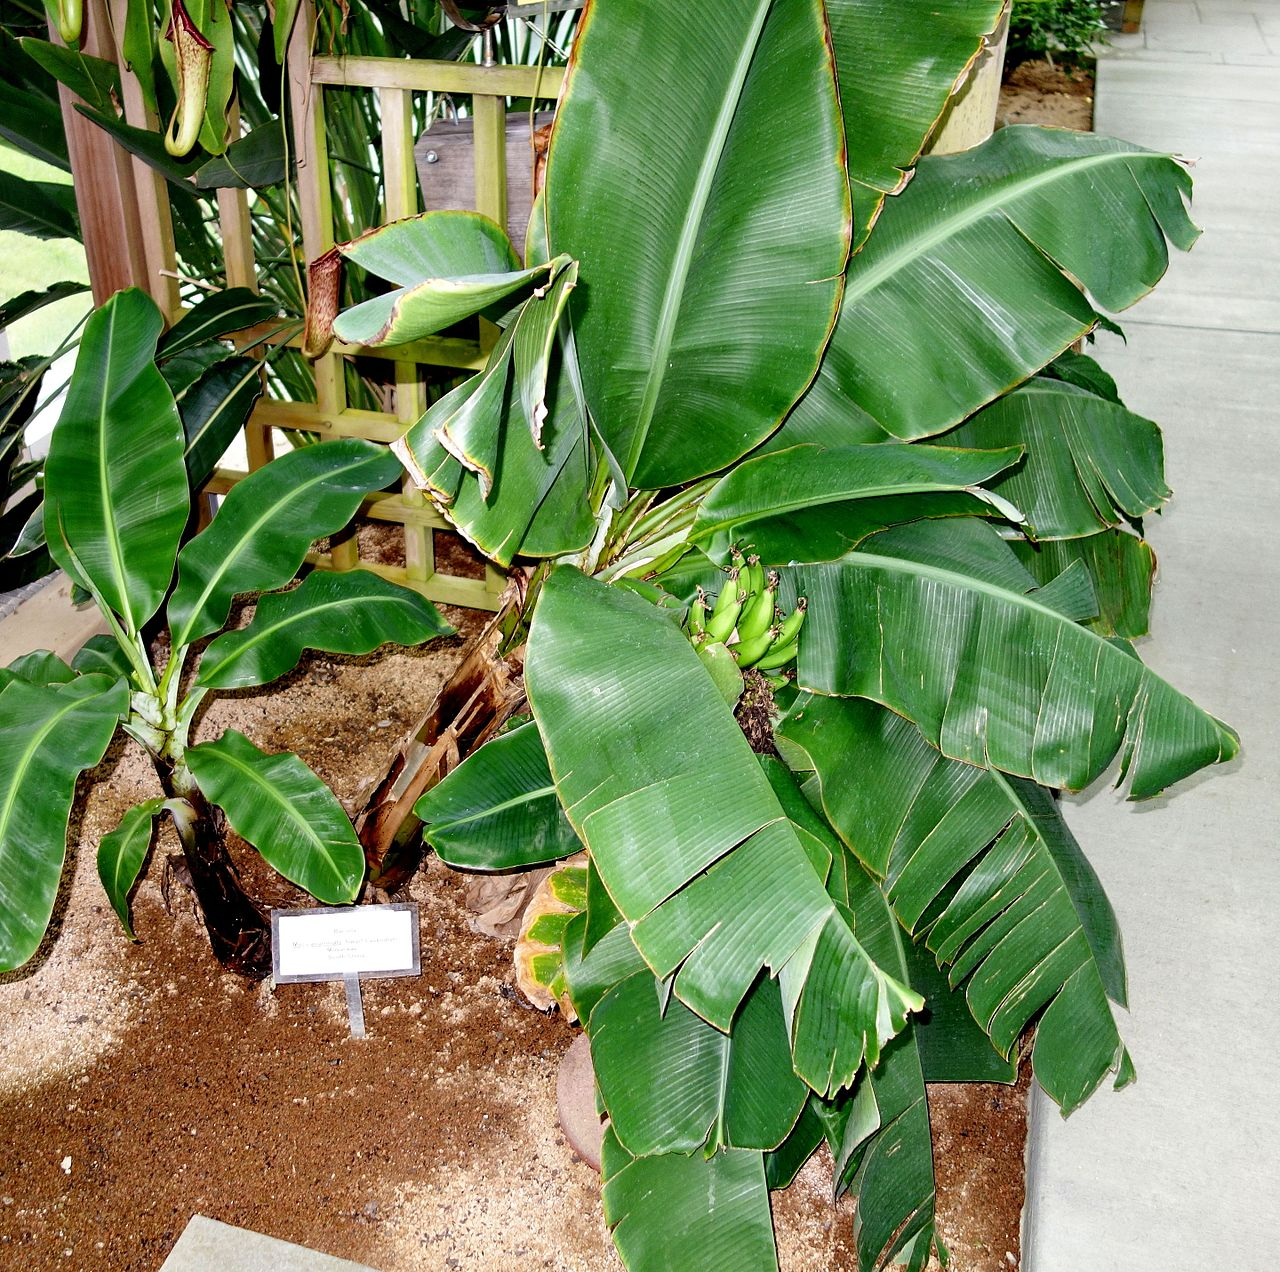 Musa acuminata, a species of banana, in the conservatory